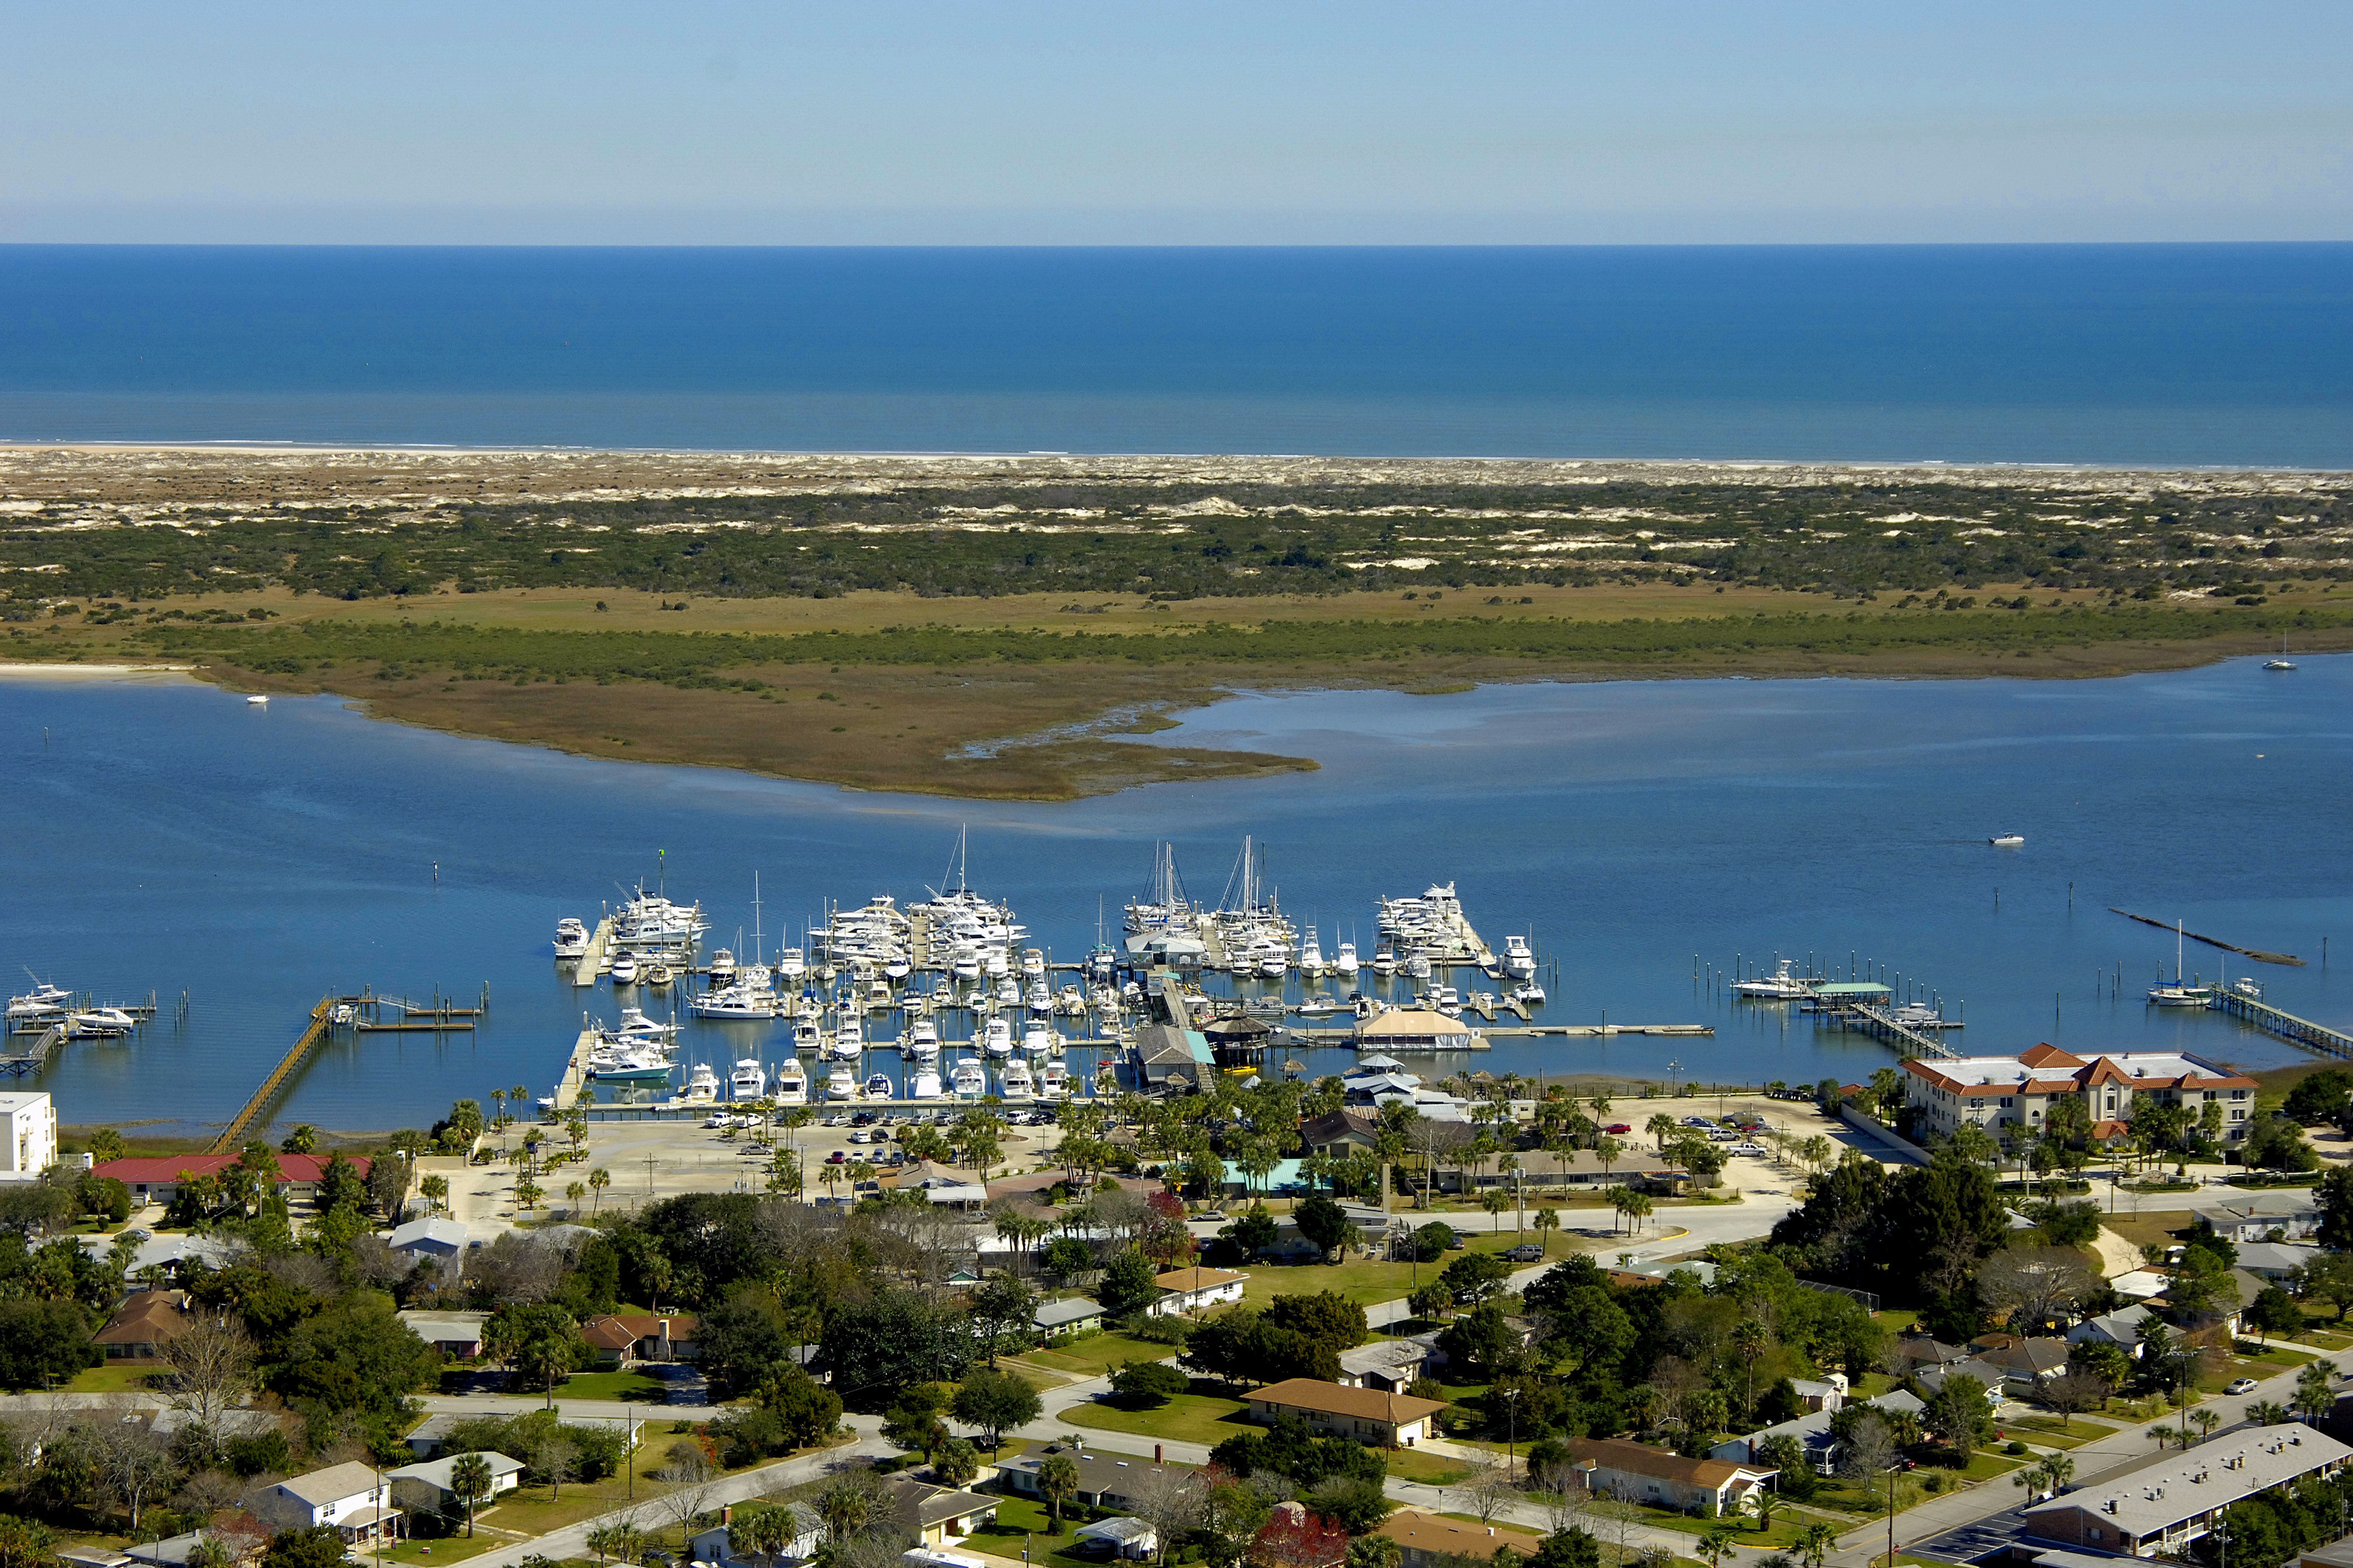 conch house marina resort in st augustine fl united states